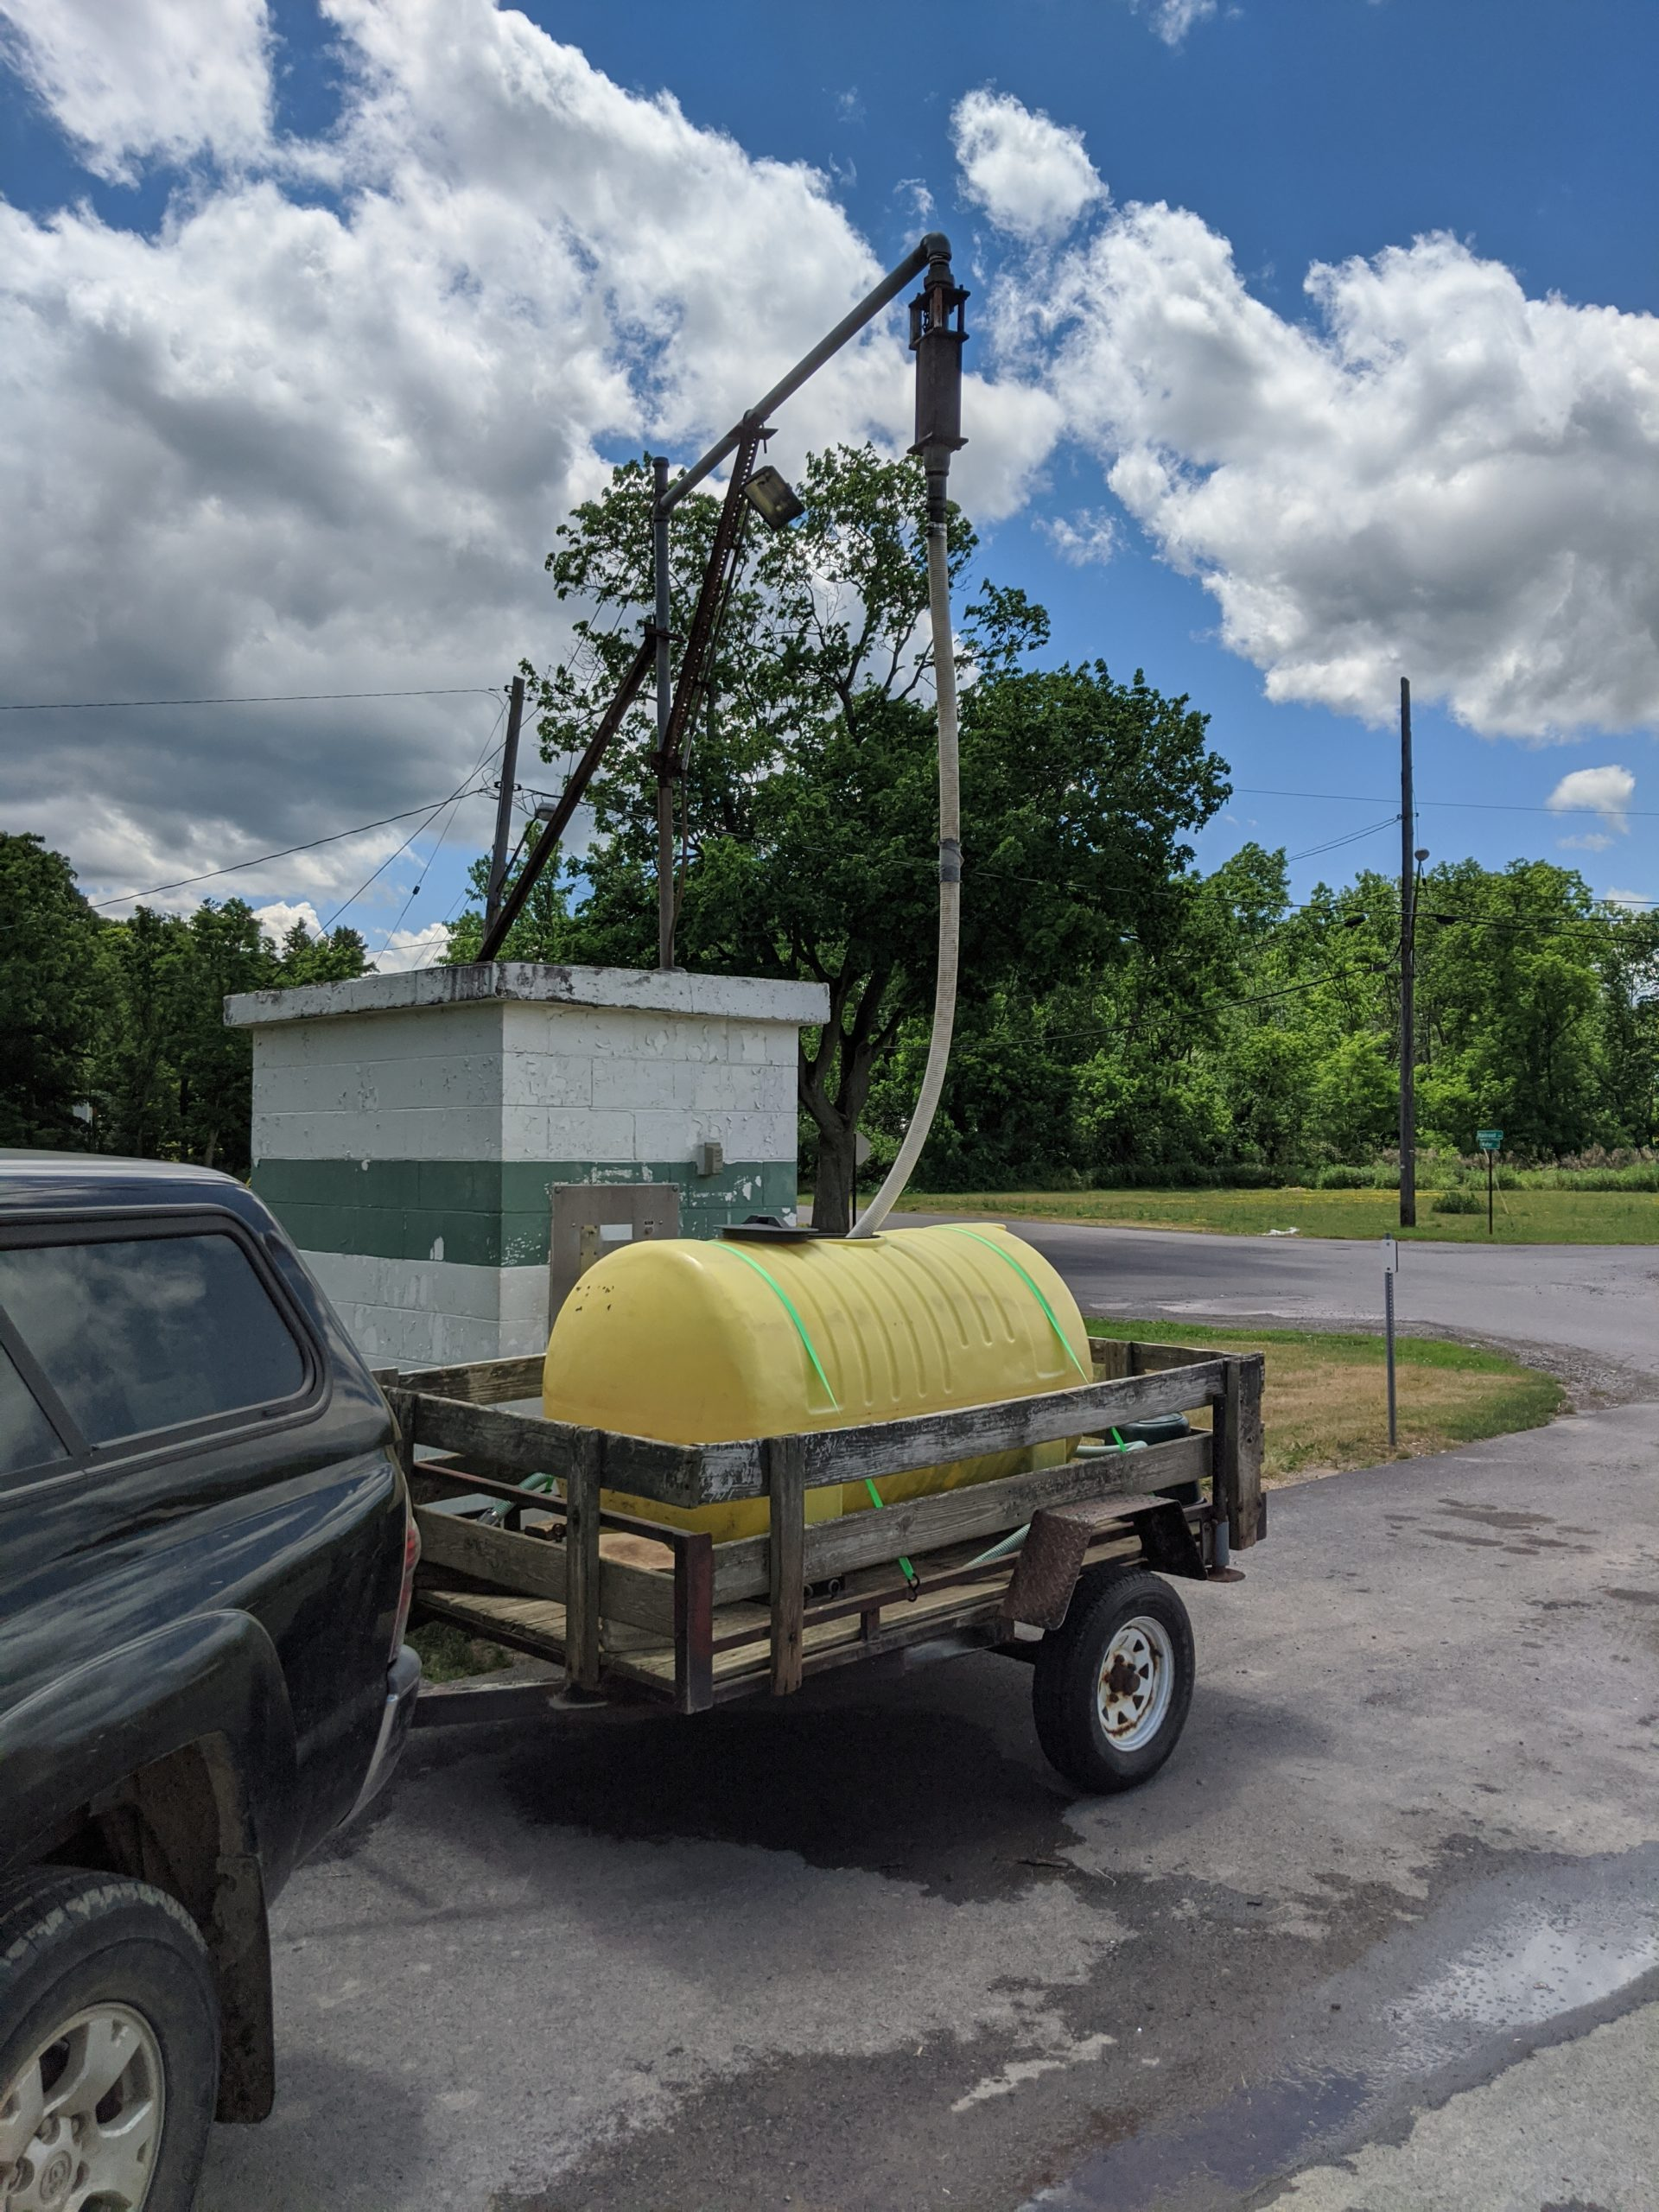 A cylindrical water tank gets filled as it sits in a small wooden trailer.